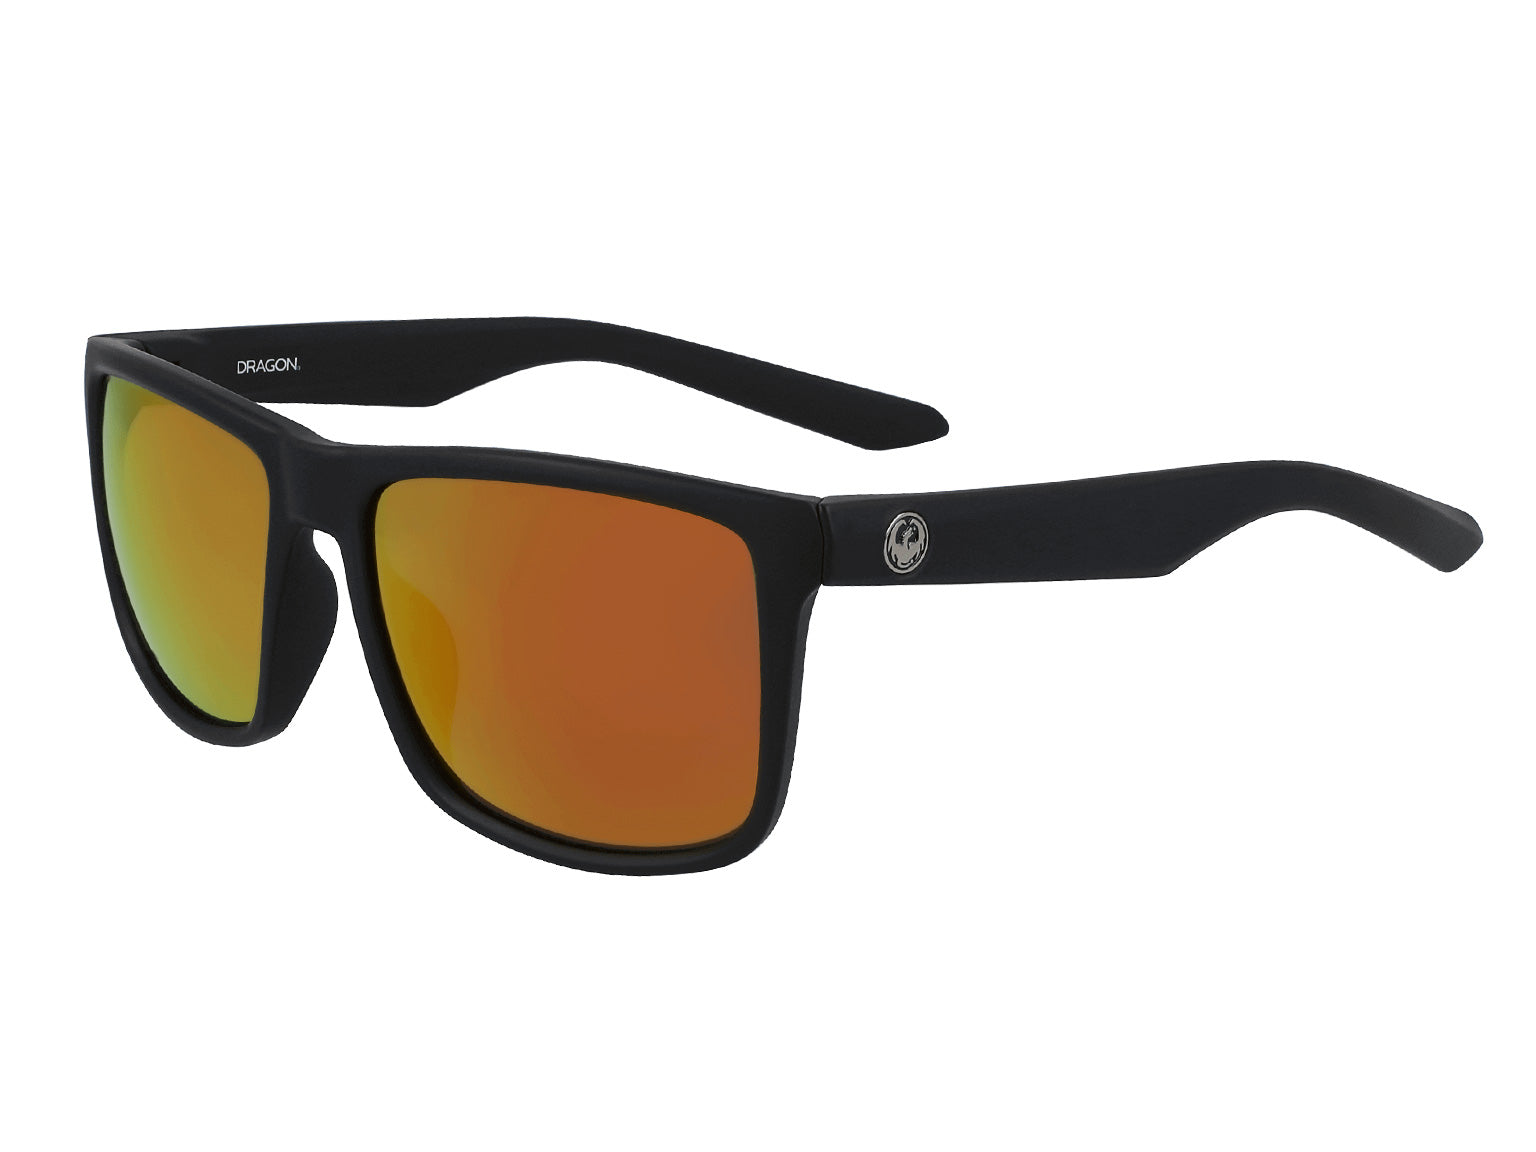 MERIDIEN - Matte Black ; with Lumalens Orange Ionized Lens